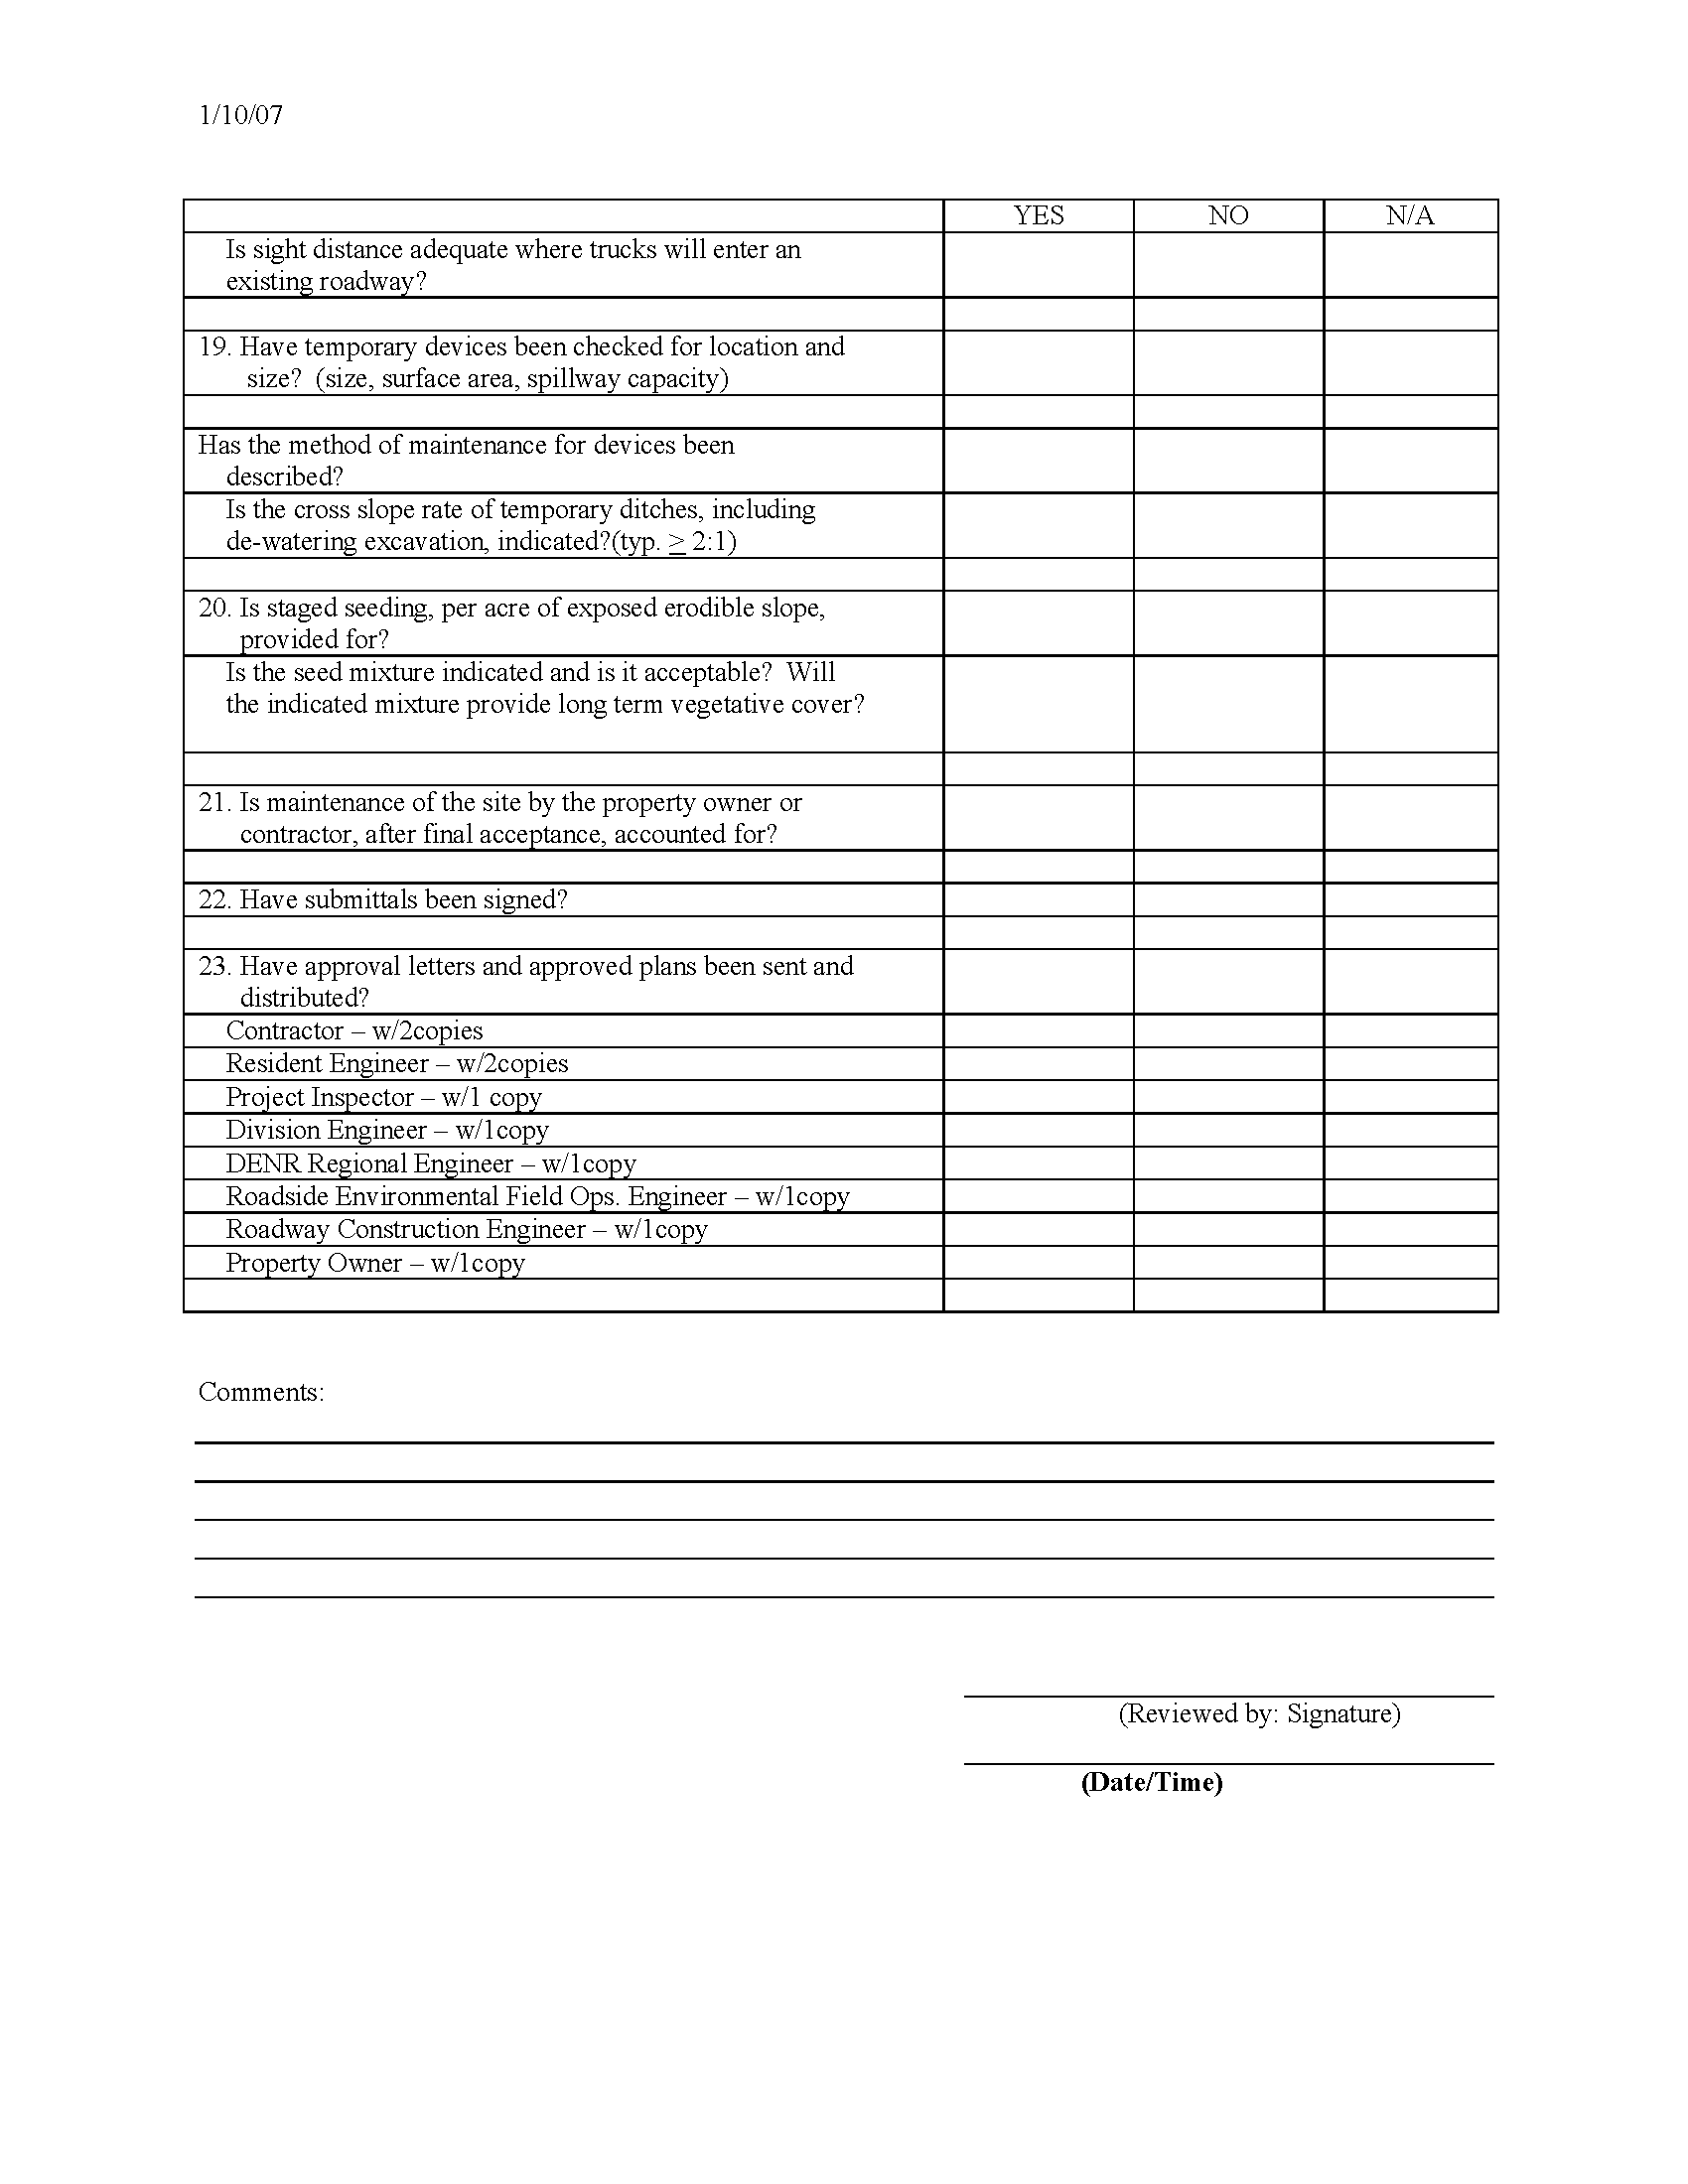 Construction Manual Reference Docs - All Documents